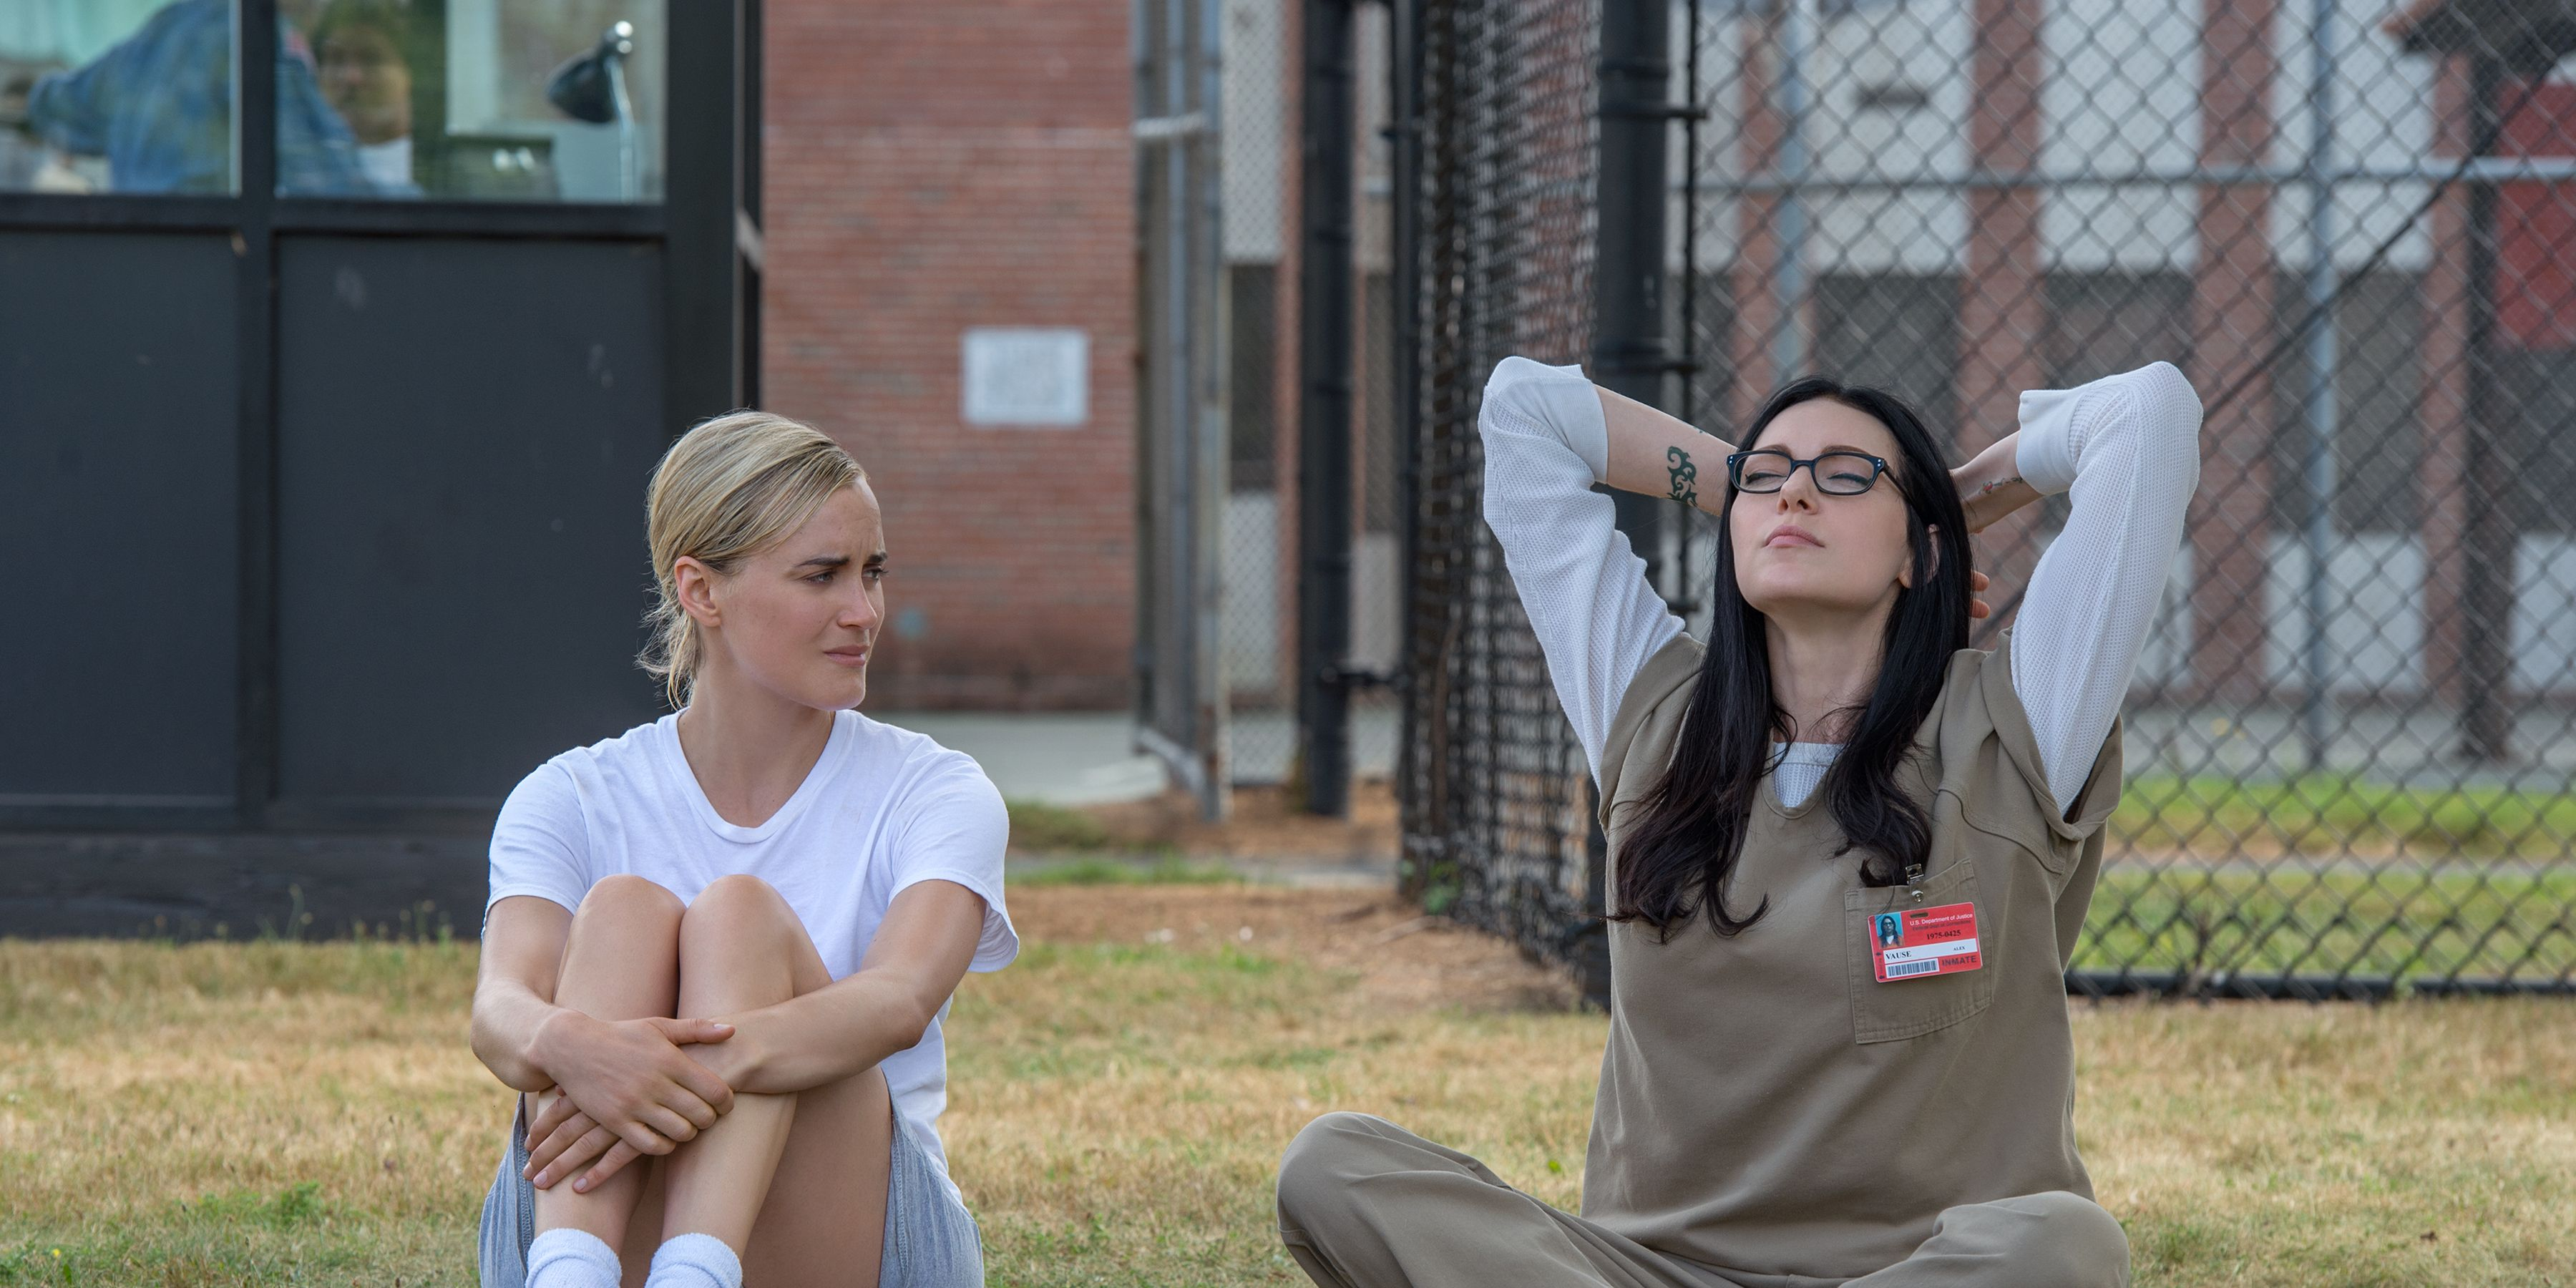 Taylor Schilling as Piper and Laura Prepon as Alex in Orange is the New Black season 4